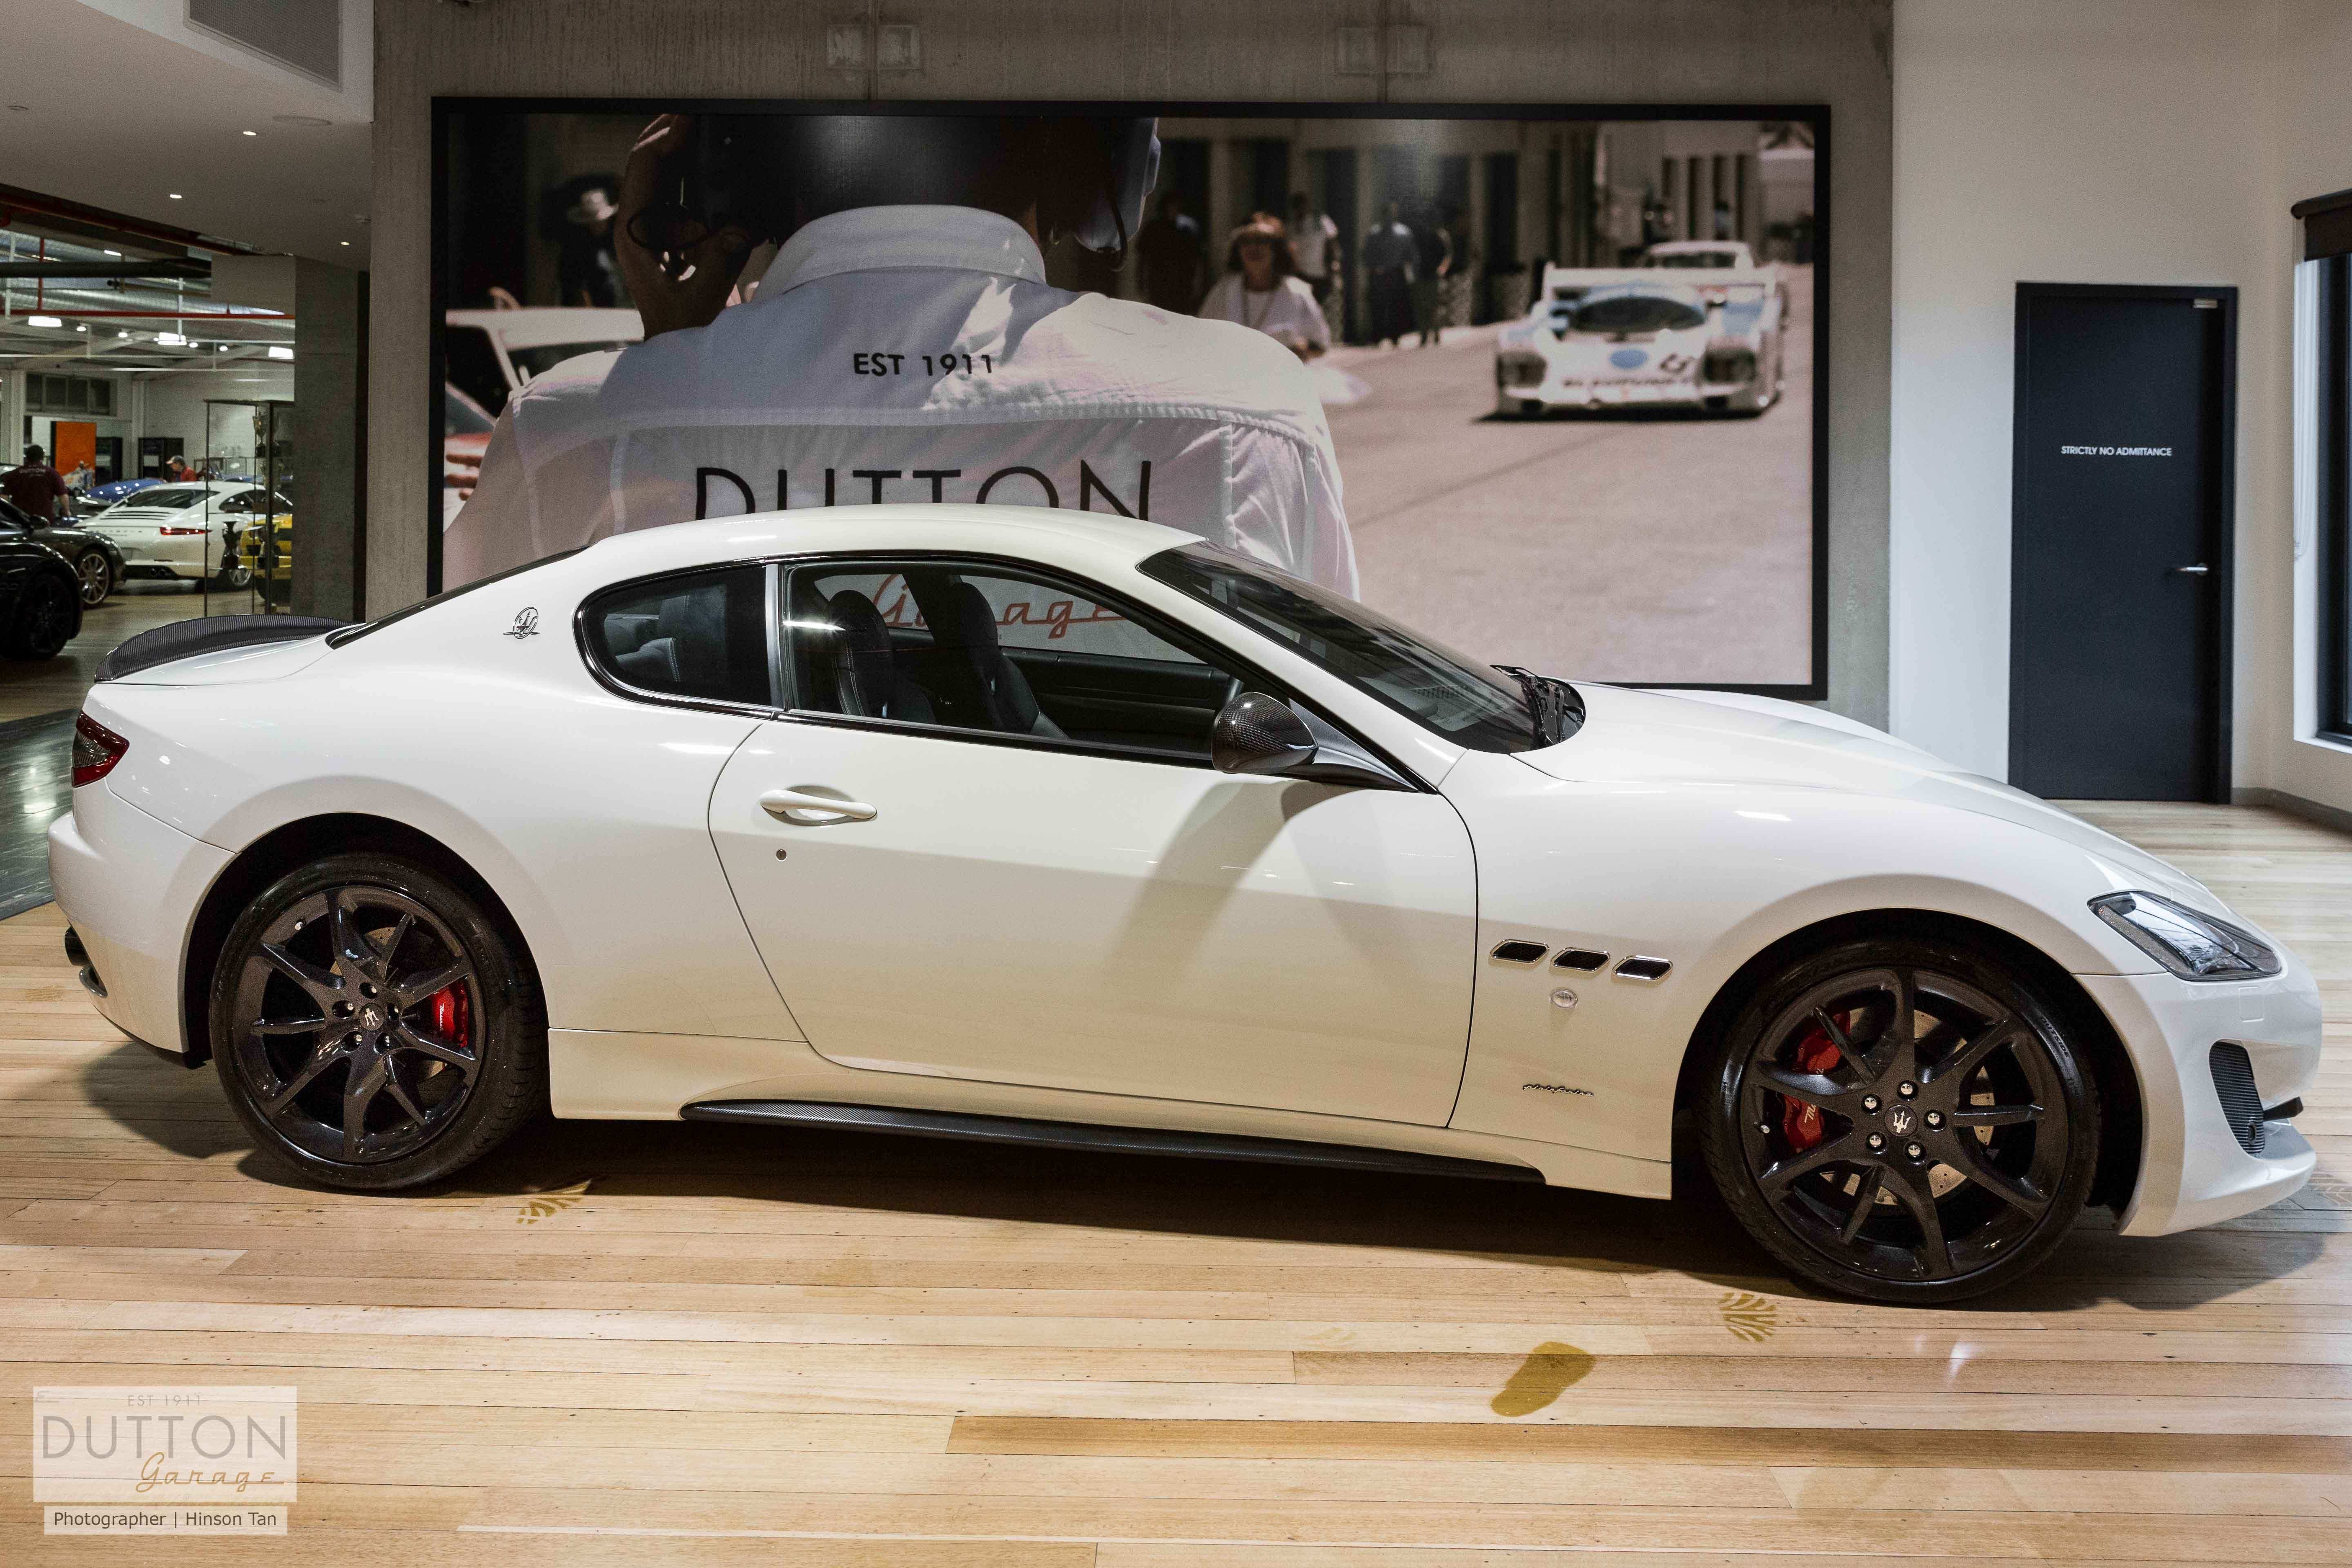 7820 Interesting Info About Maserati Spyder for Sale with Breathtaking Photos Cars Review